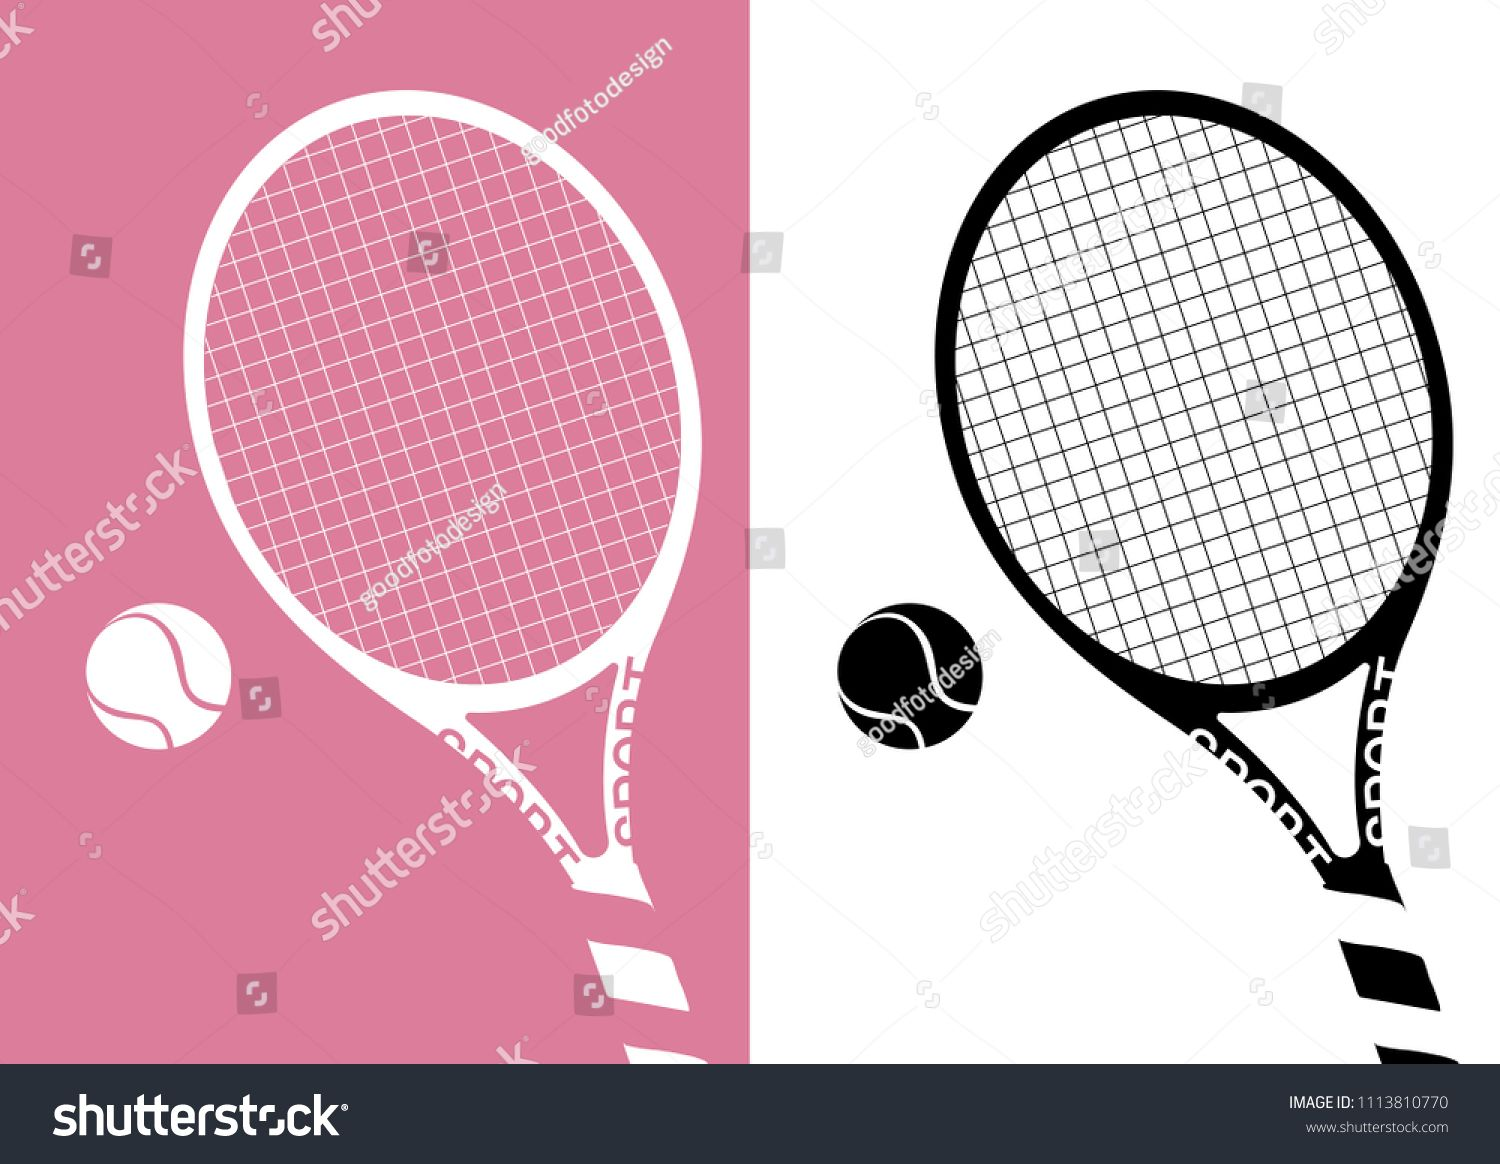 Silhouette Tennis Racket And Ball Icon On Pastel Pink Background Illustration Ad Sponsored Racket Ball Silhouette T Tennis Racket Rackets Pink Background